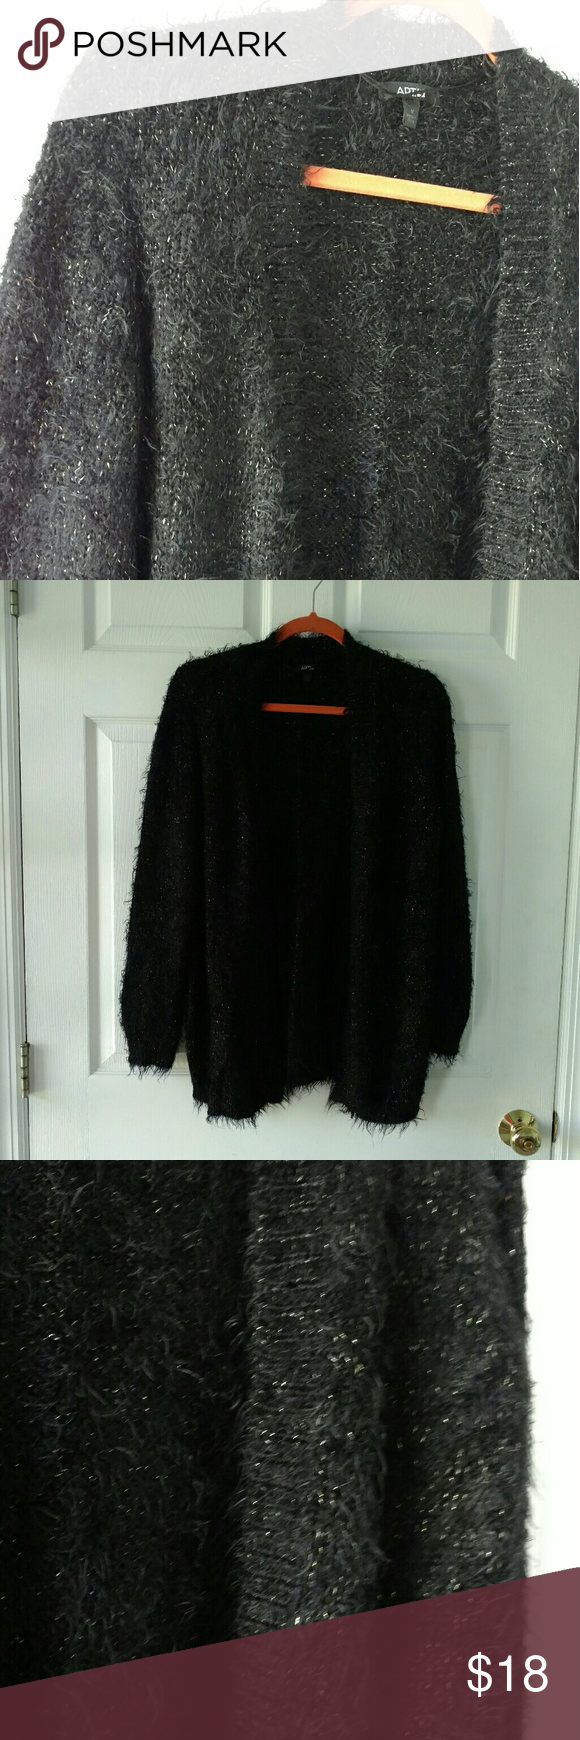 Fuzzy Black and Gold Cardigan So soft! There are gold sparkles all ...